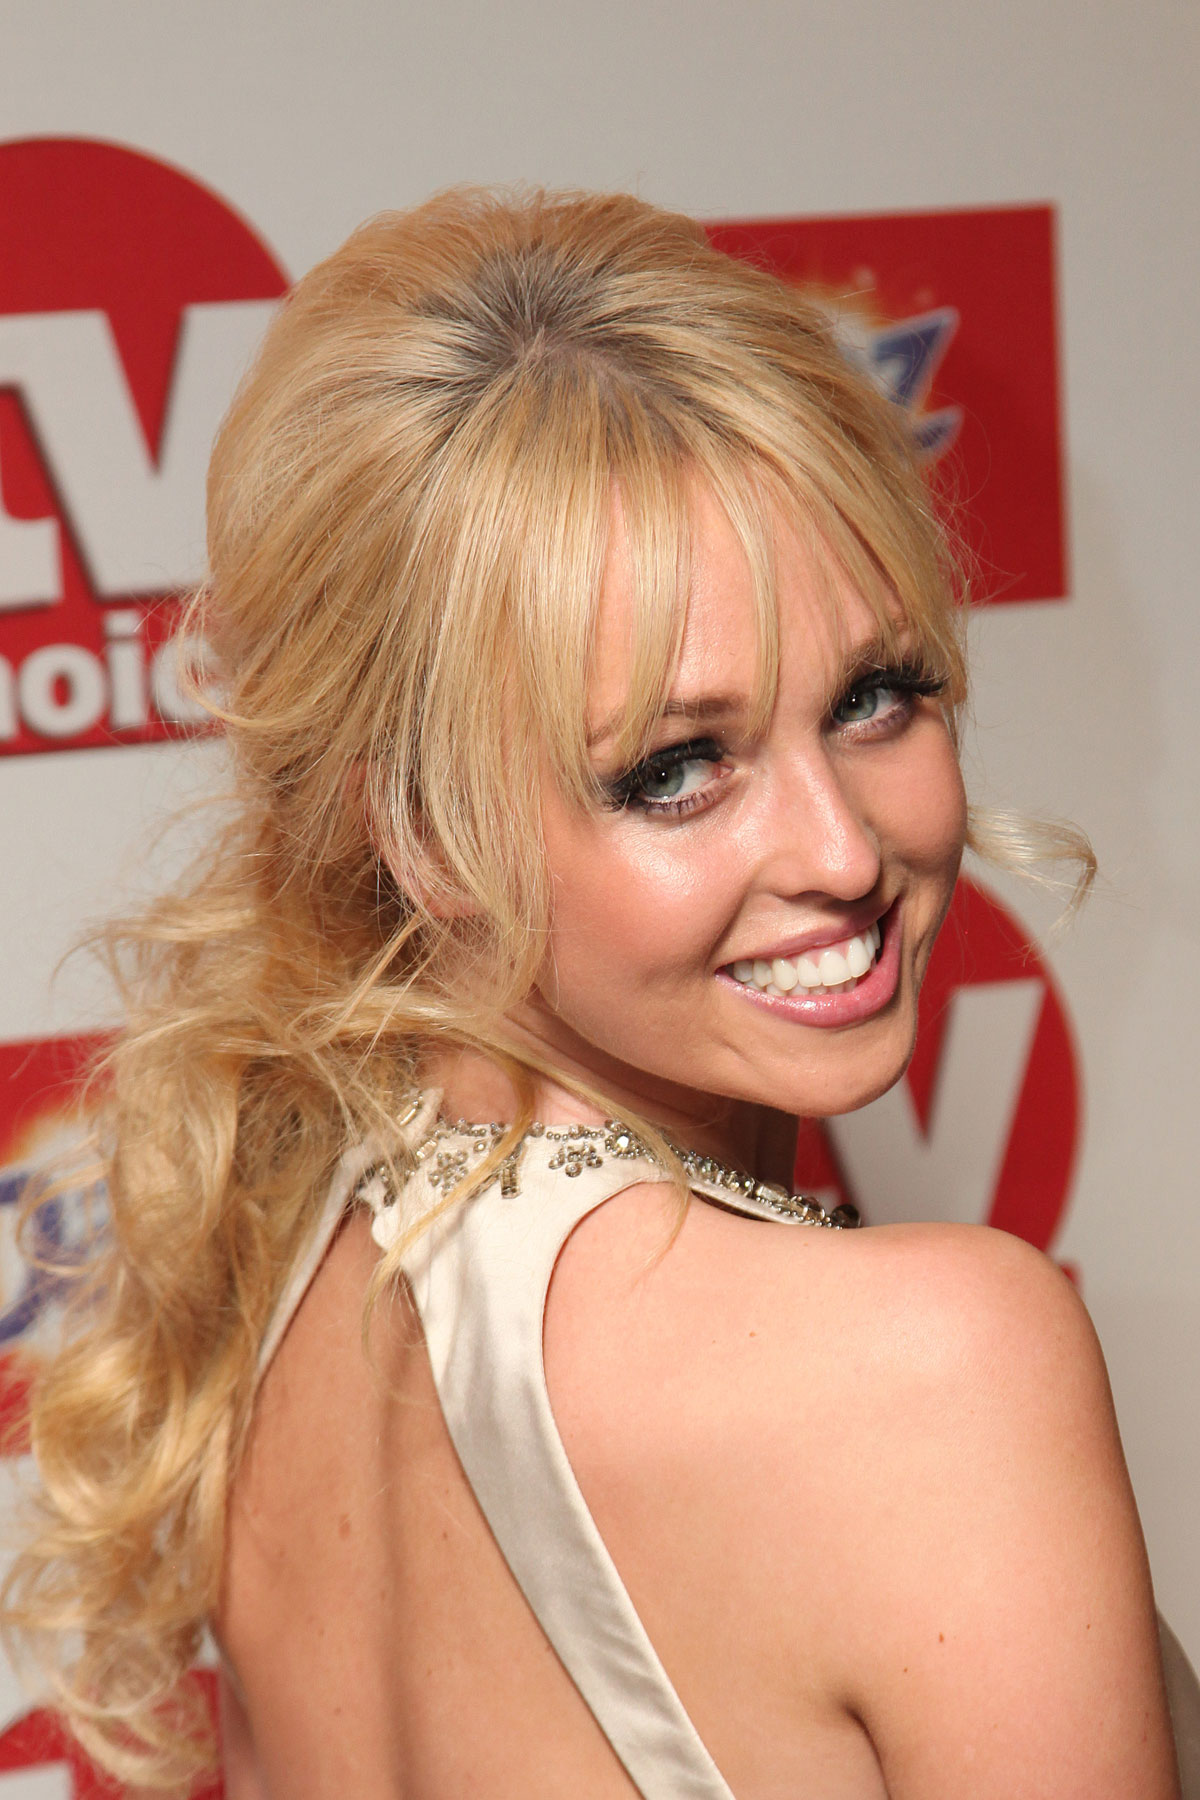 Jorgie Porter (born 1987) nude (62 foto and video), Tits, Fappening, Selfie, panties 2019